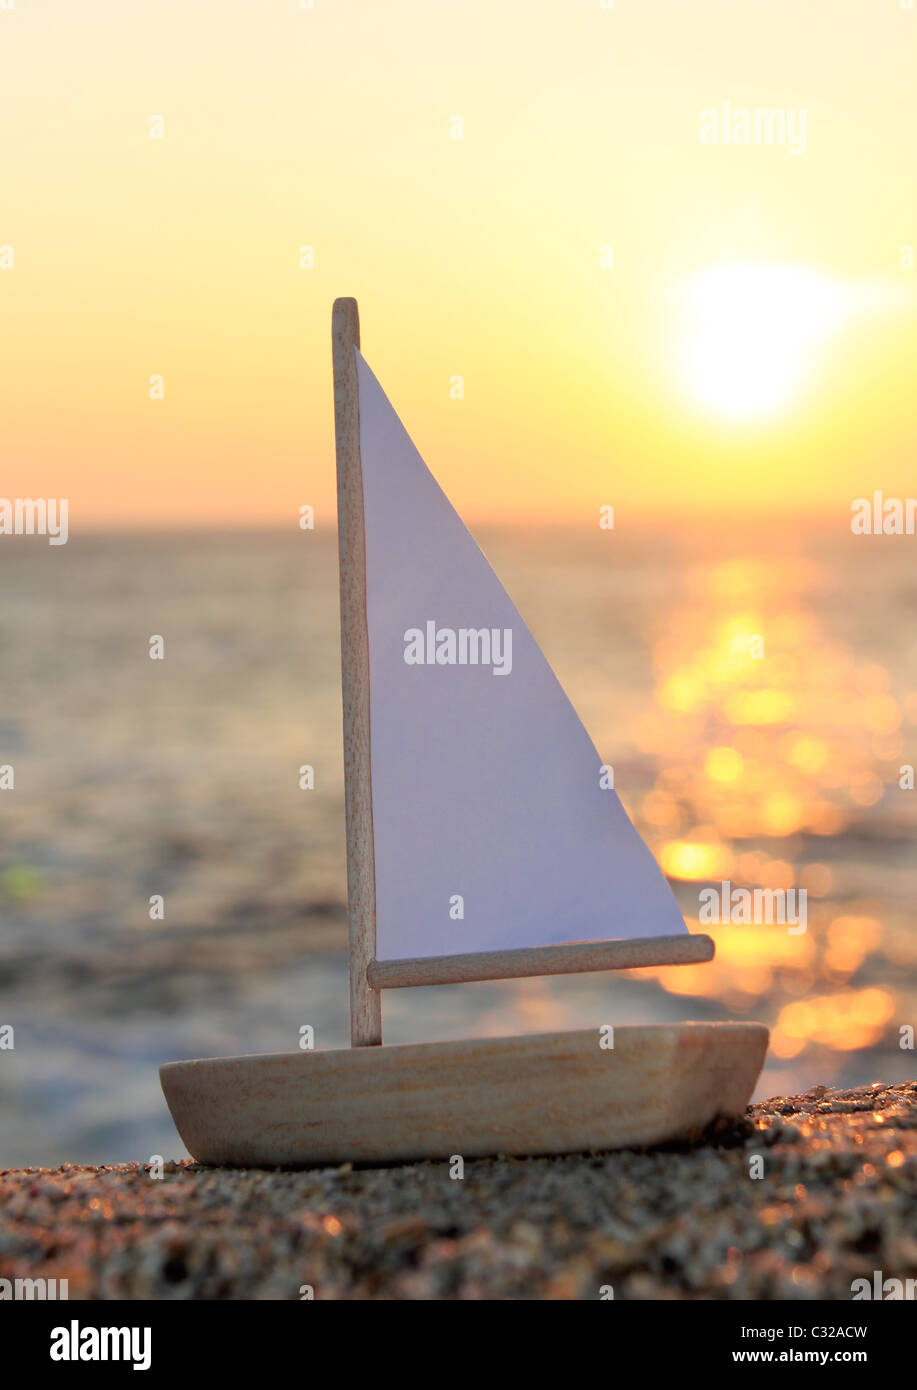 Model boat on beach - Stock Image